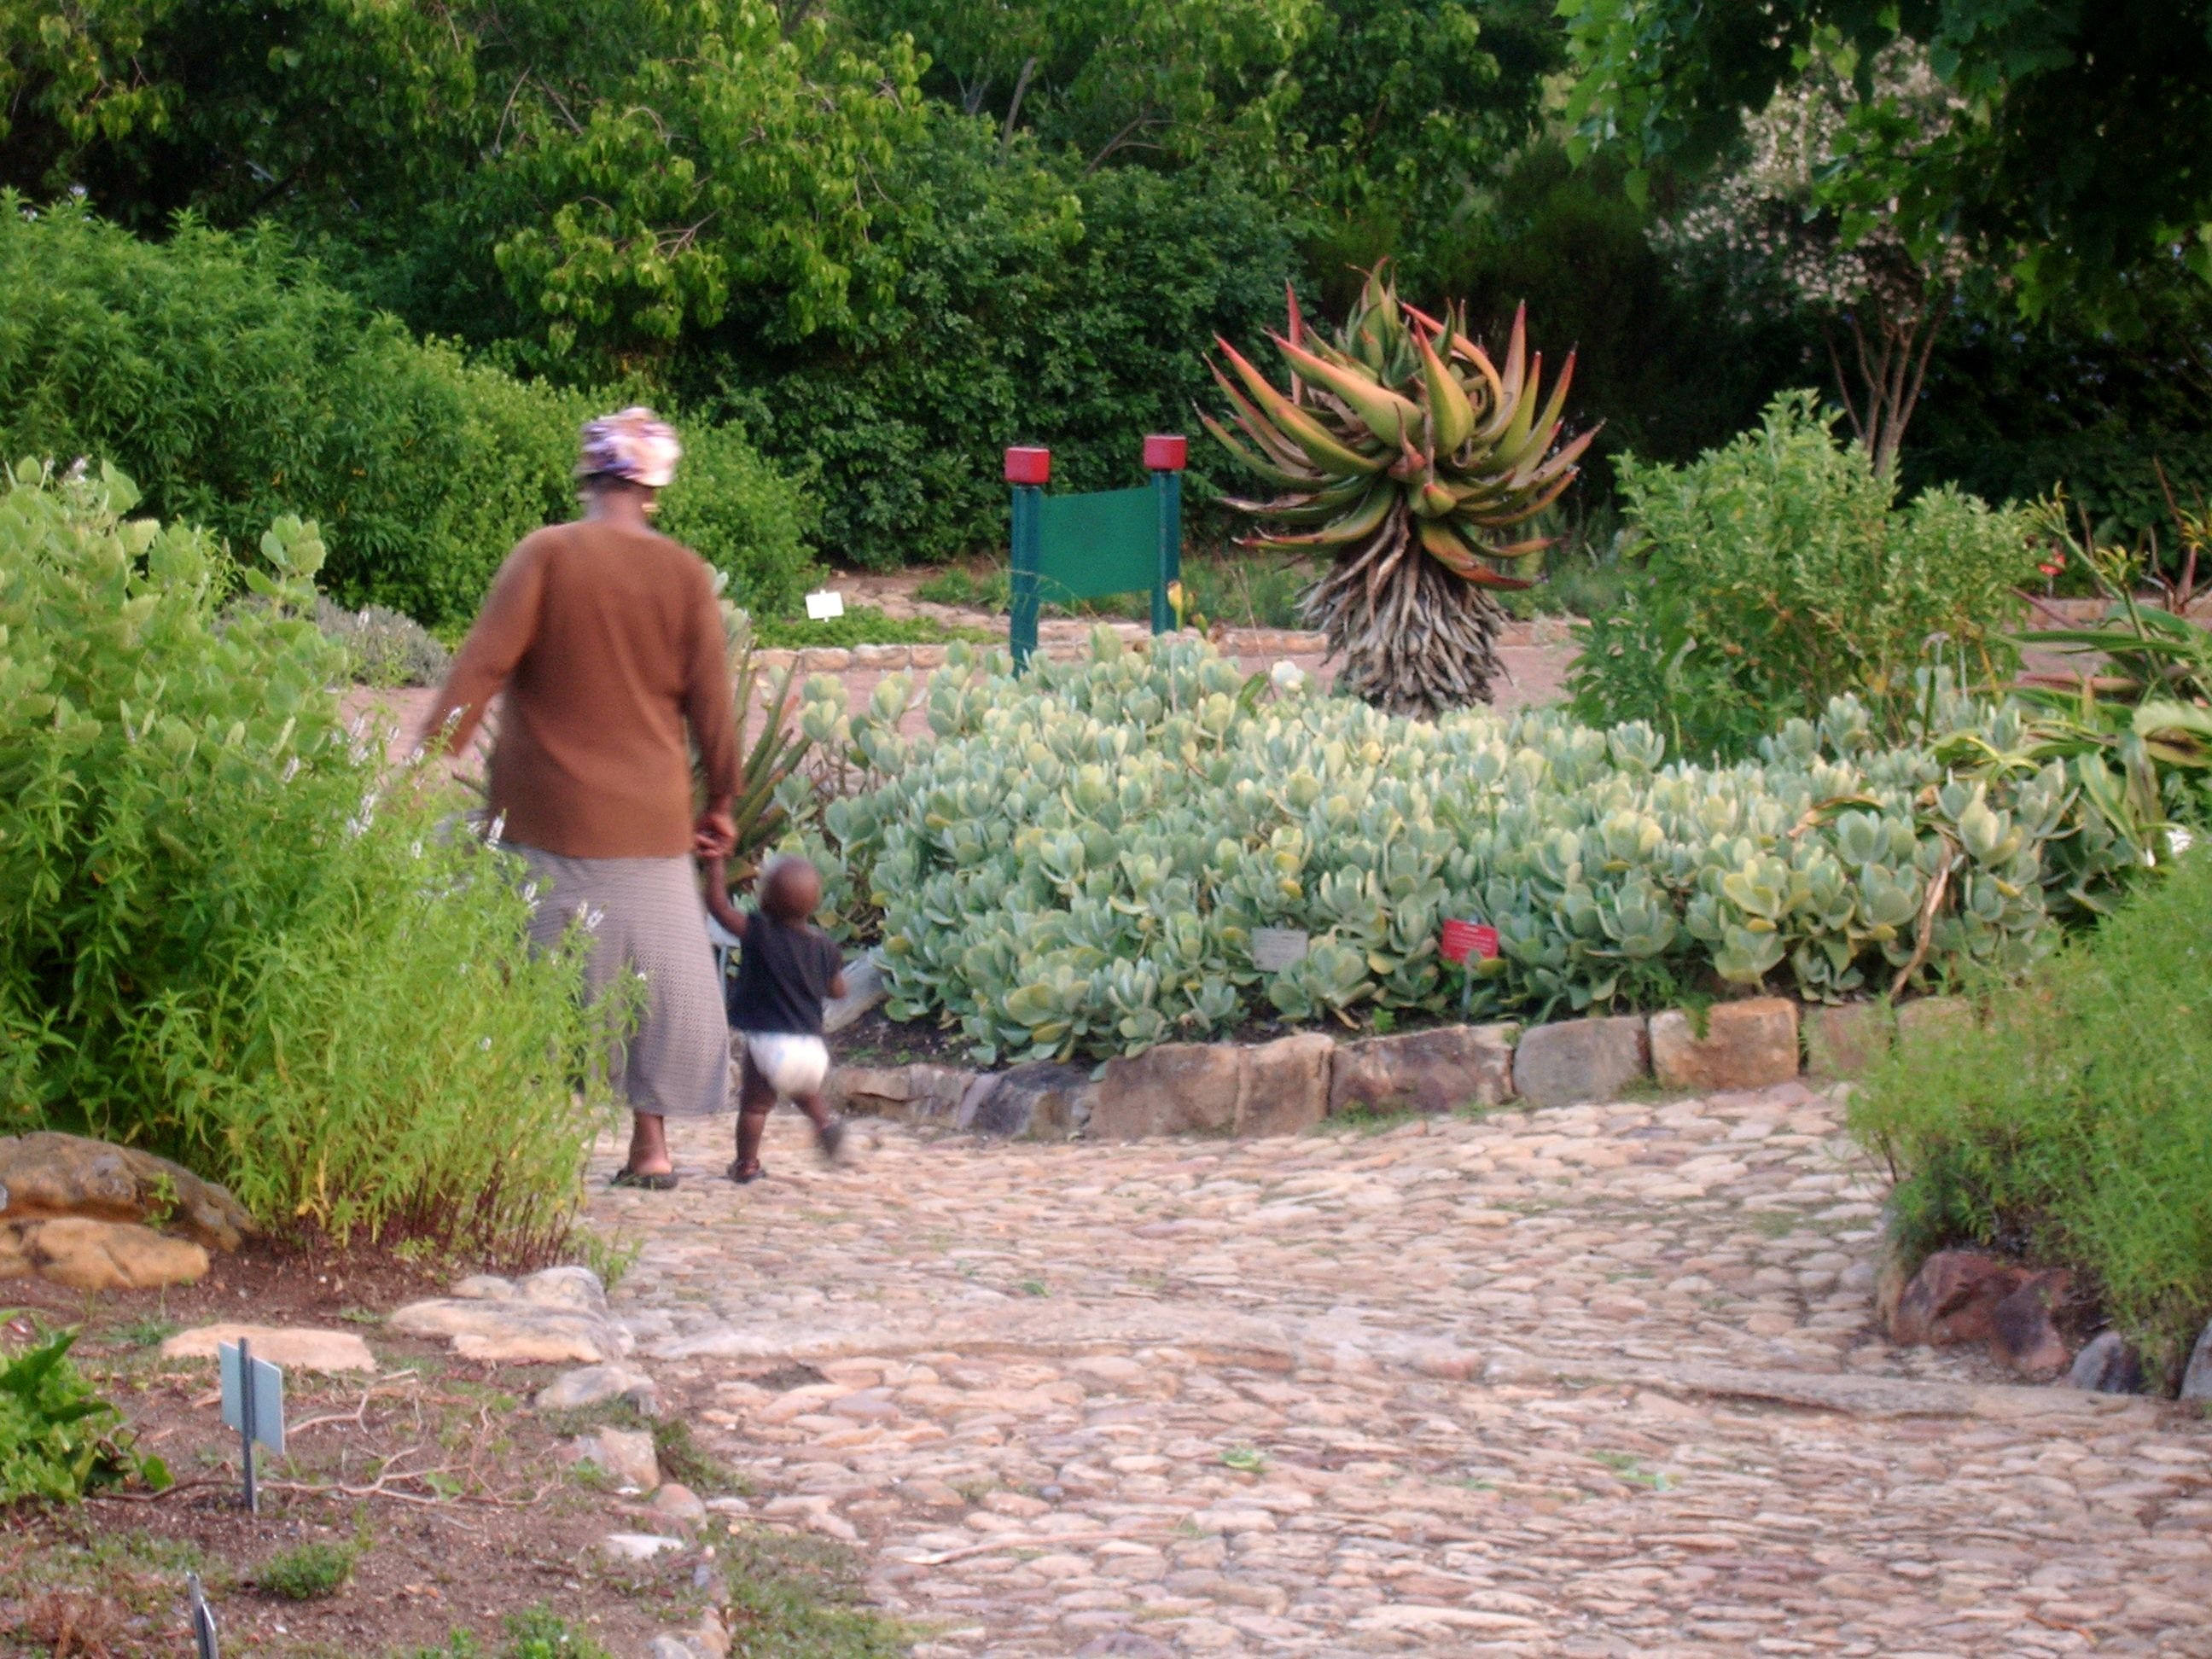 Grandmother & Child in Kirstenbosch Garden